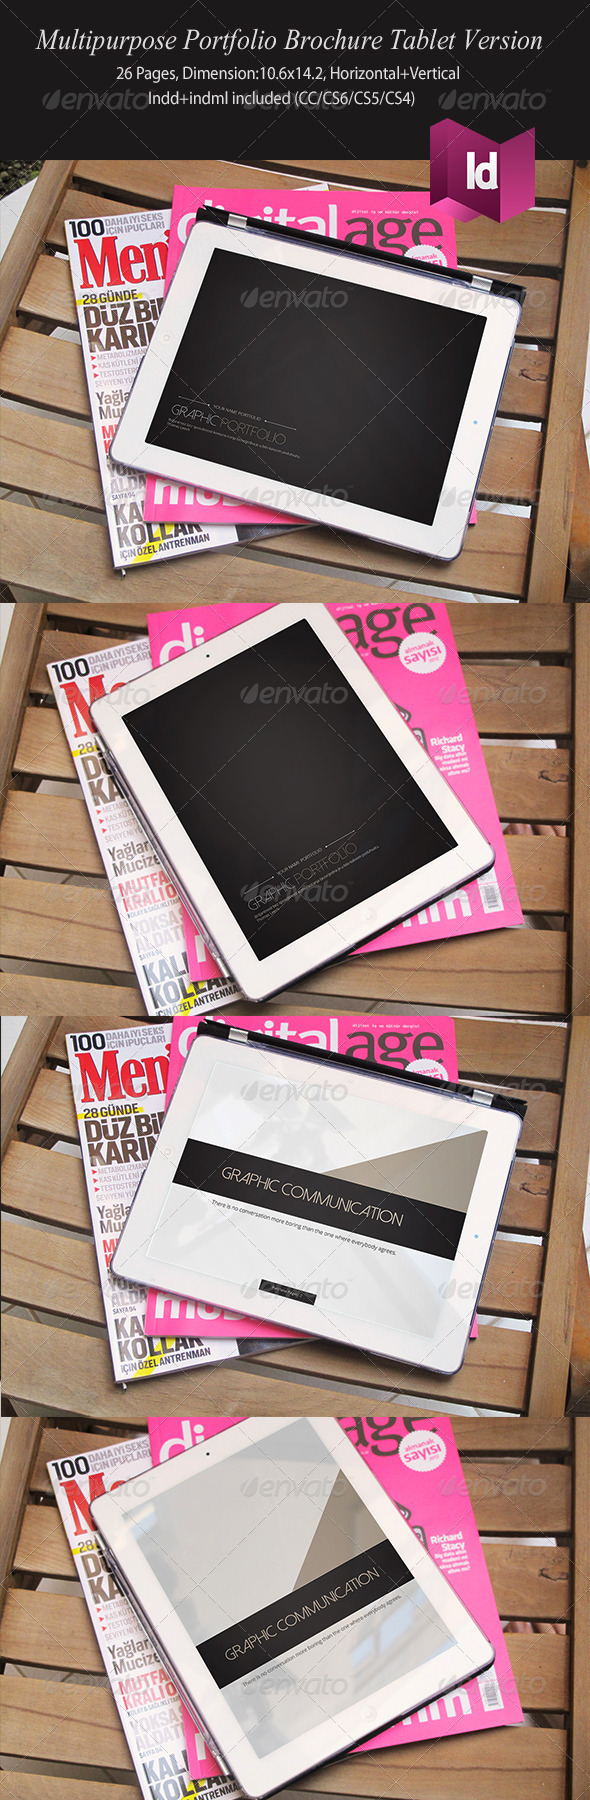 Multipurpose Portfolio Brochure Tablet Version - Digital Books ePublishing